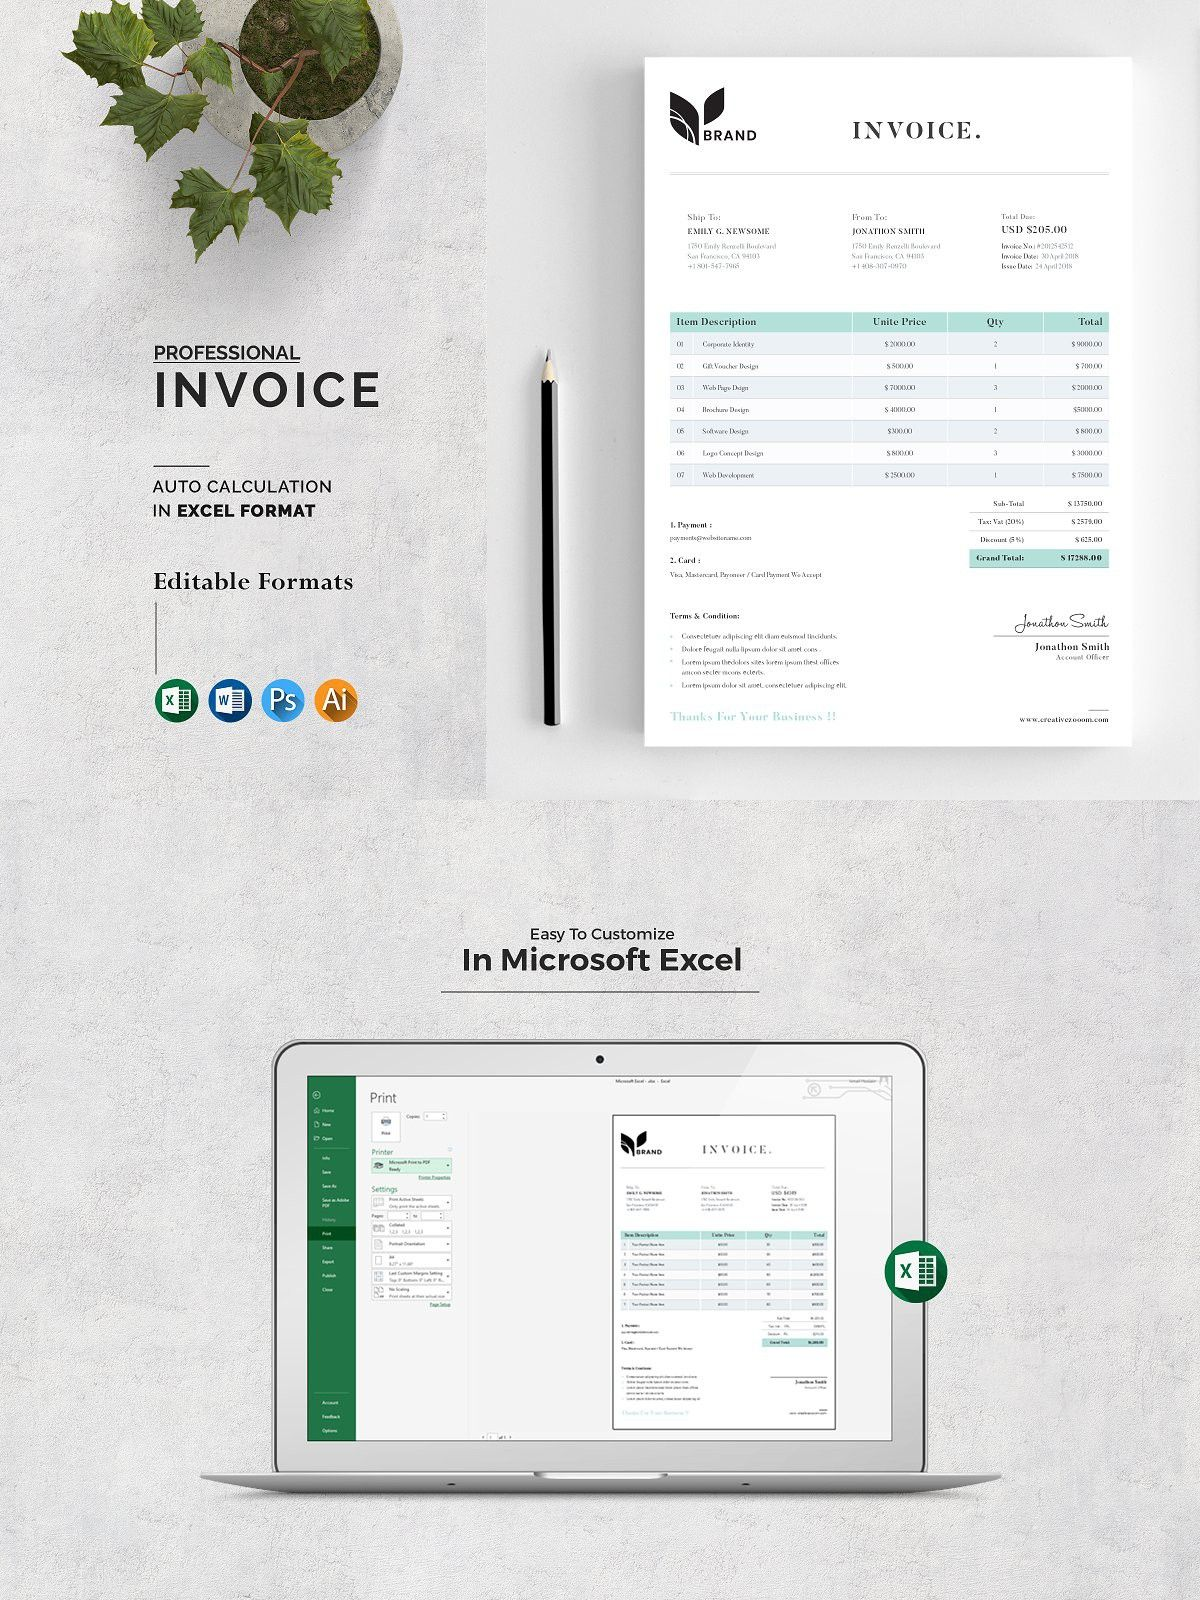 Invoice In 2020 Invoice Design Invoice Template Stationery Templates